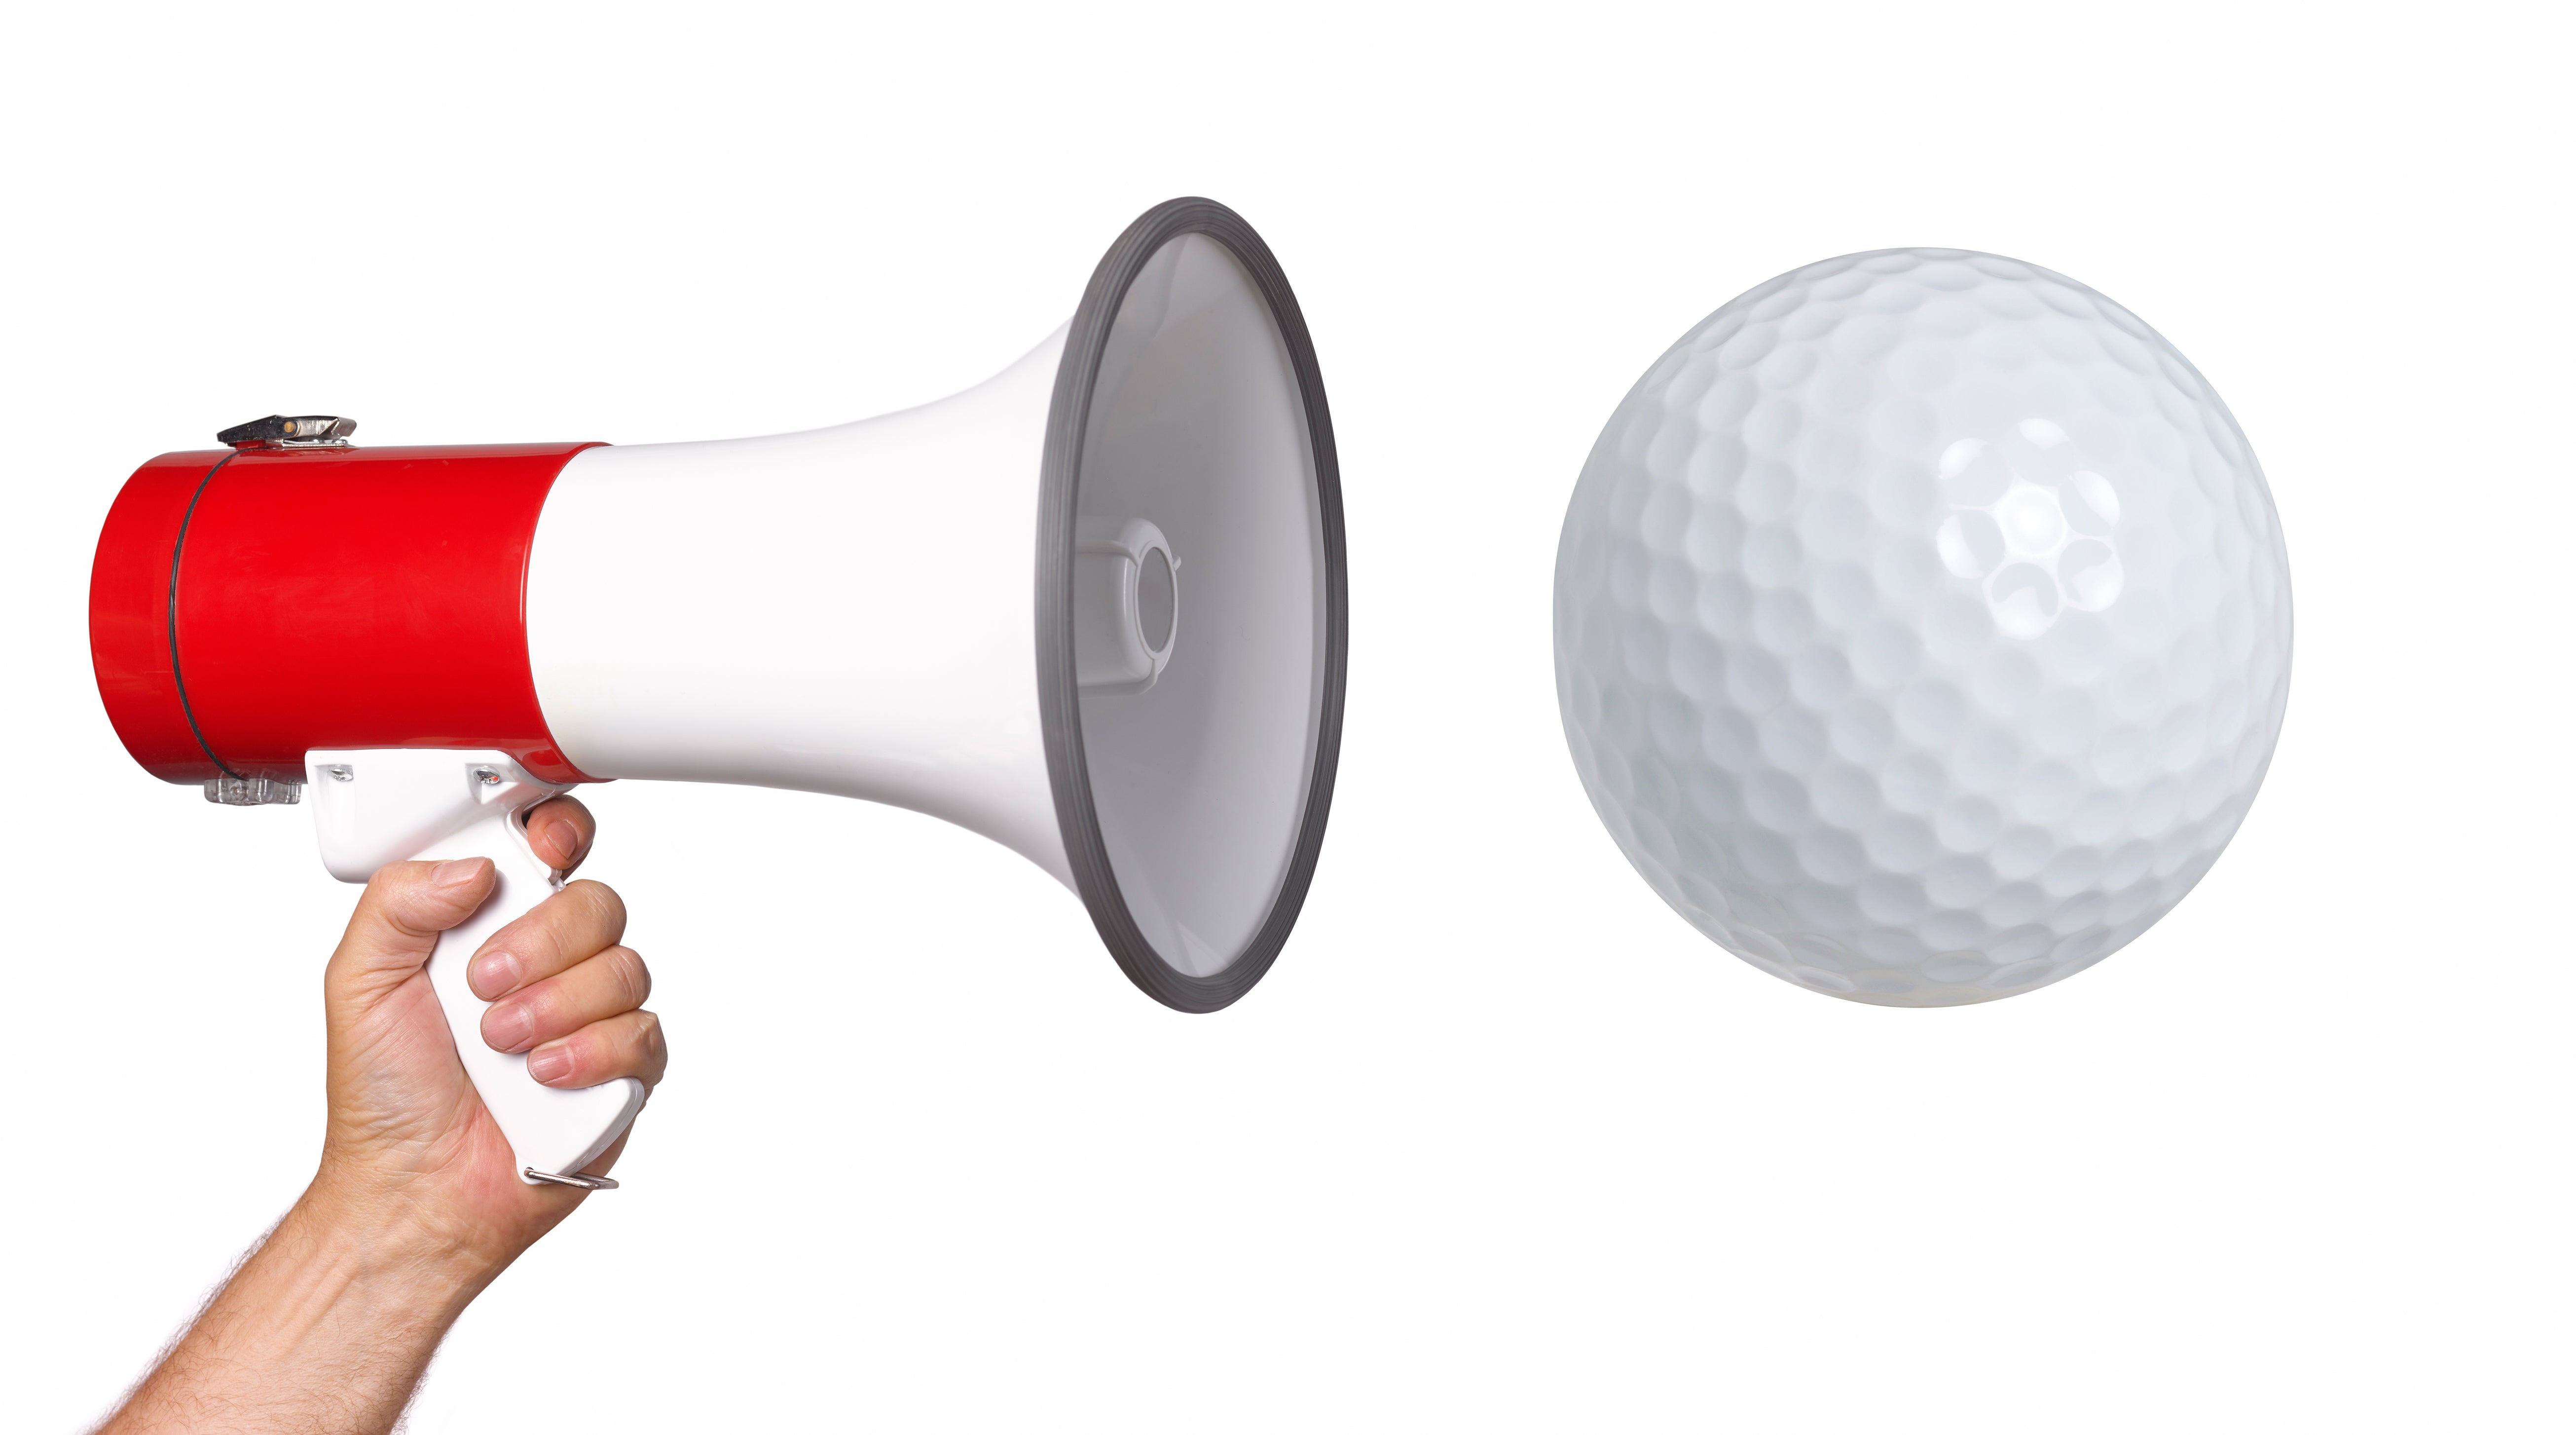 Bullhorn and golf ball